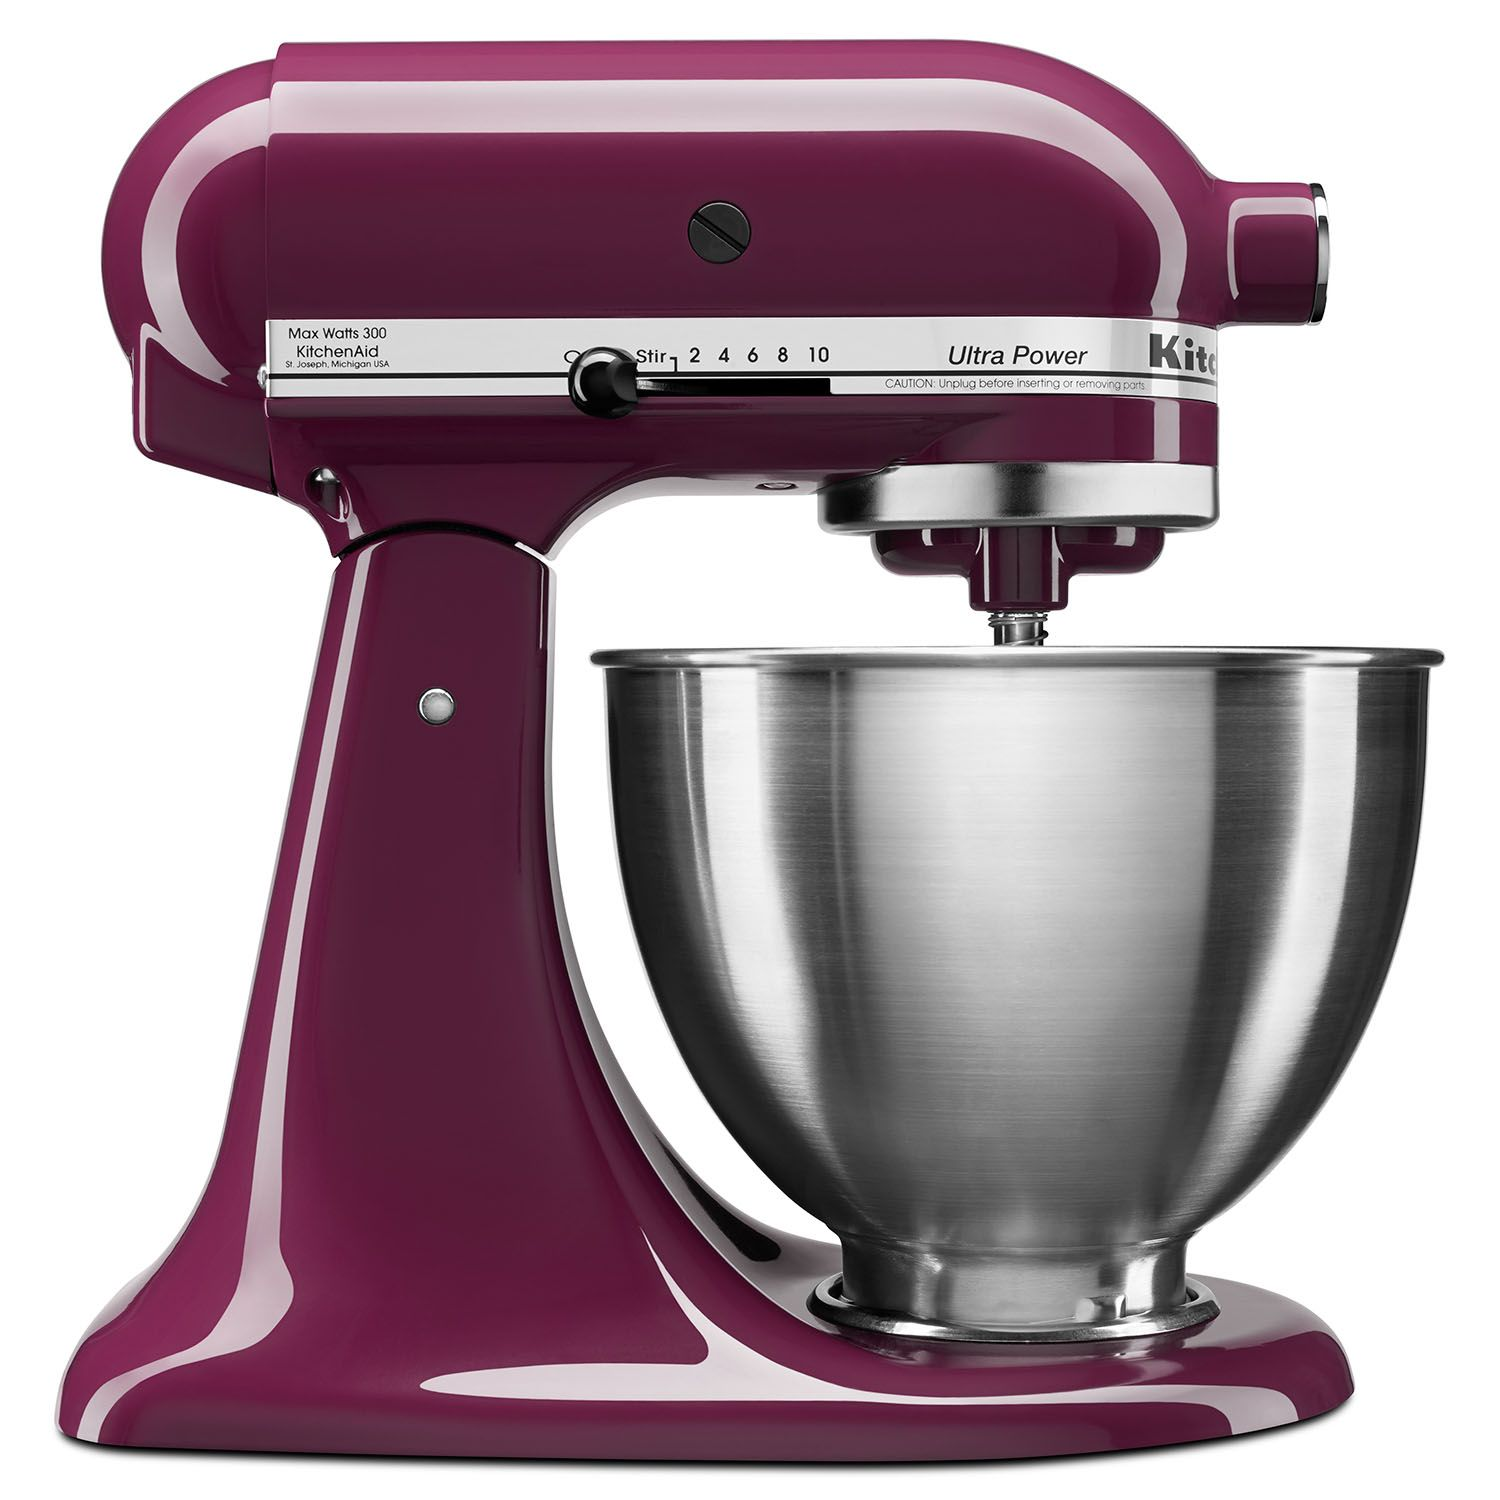 Kitchenaid 4.5 Quart Tilt Stand Mixer - Purple